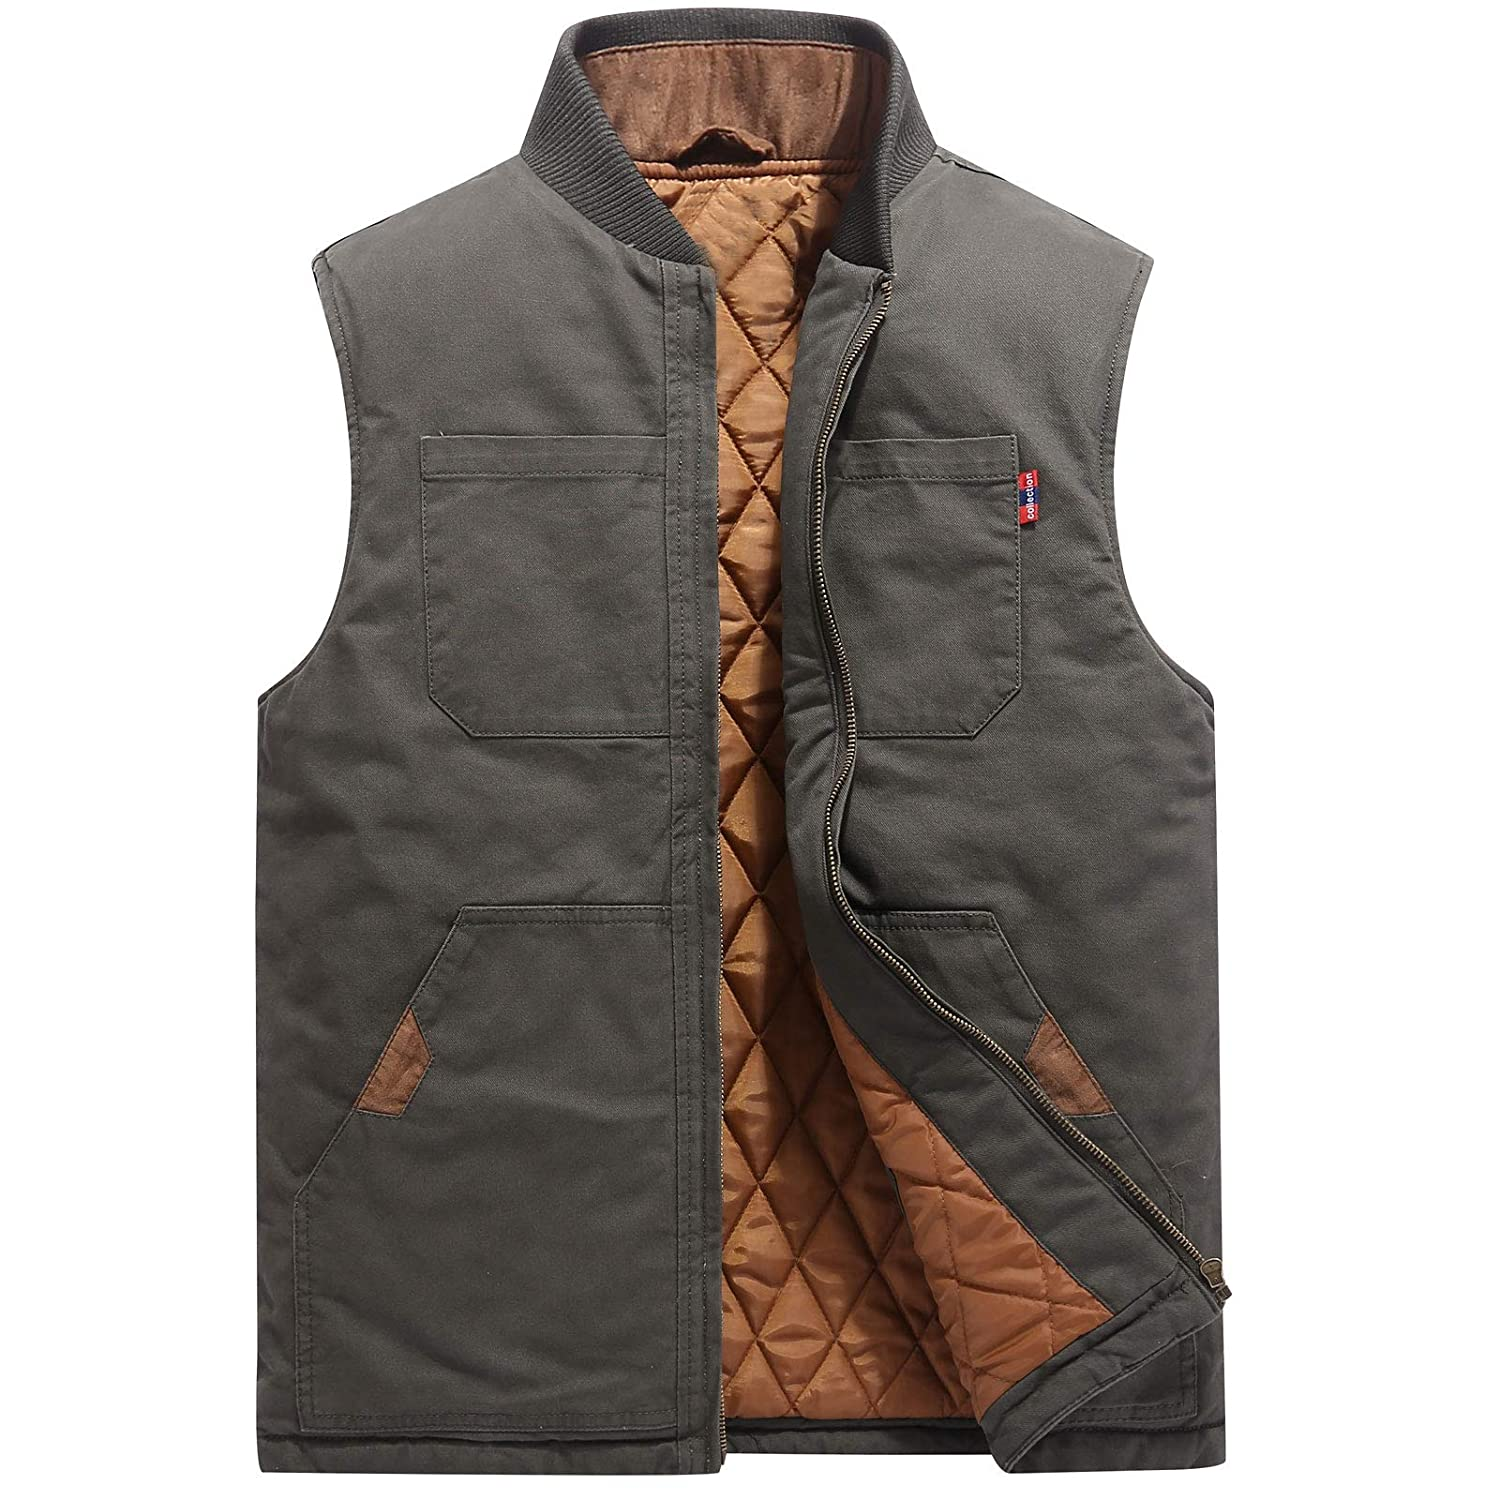 Flygo Mens Canvas Work Utility Rugged Quilted Duck Vest